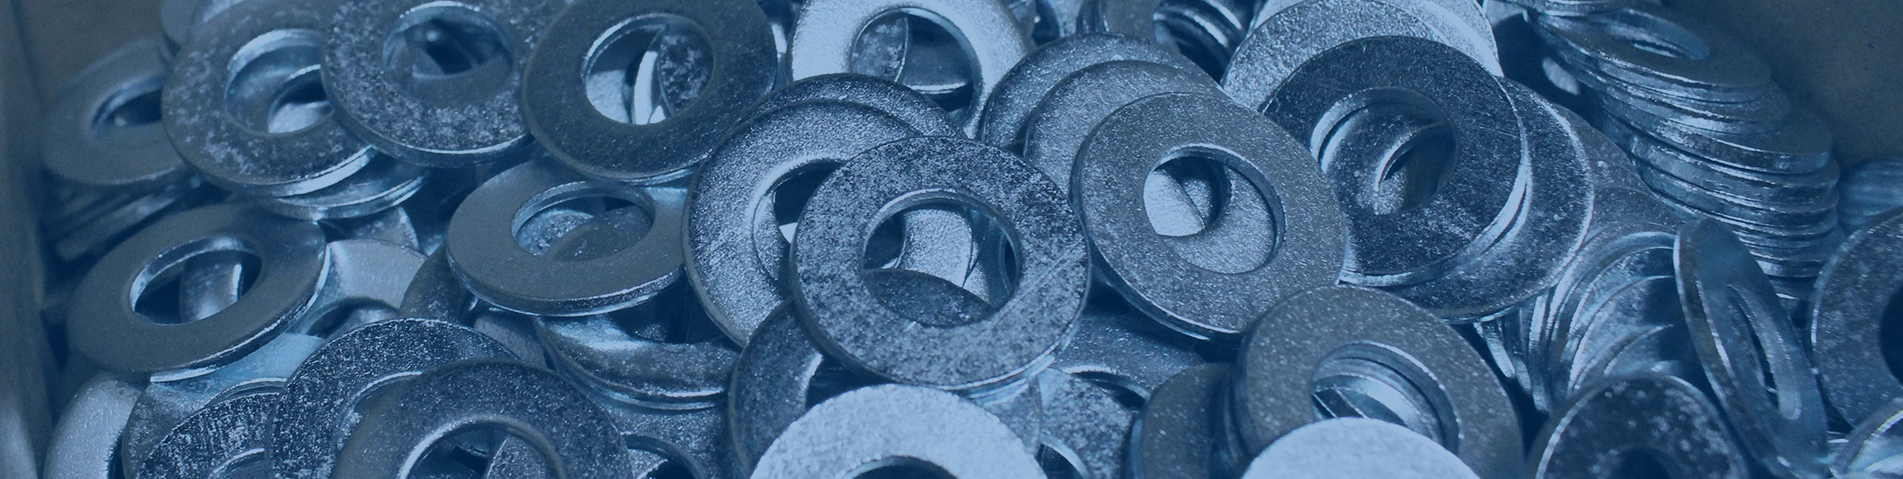 close up shot of fasteners inside of a box